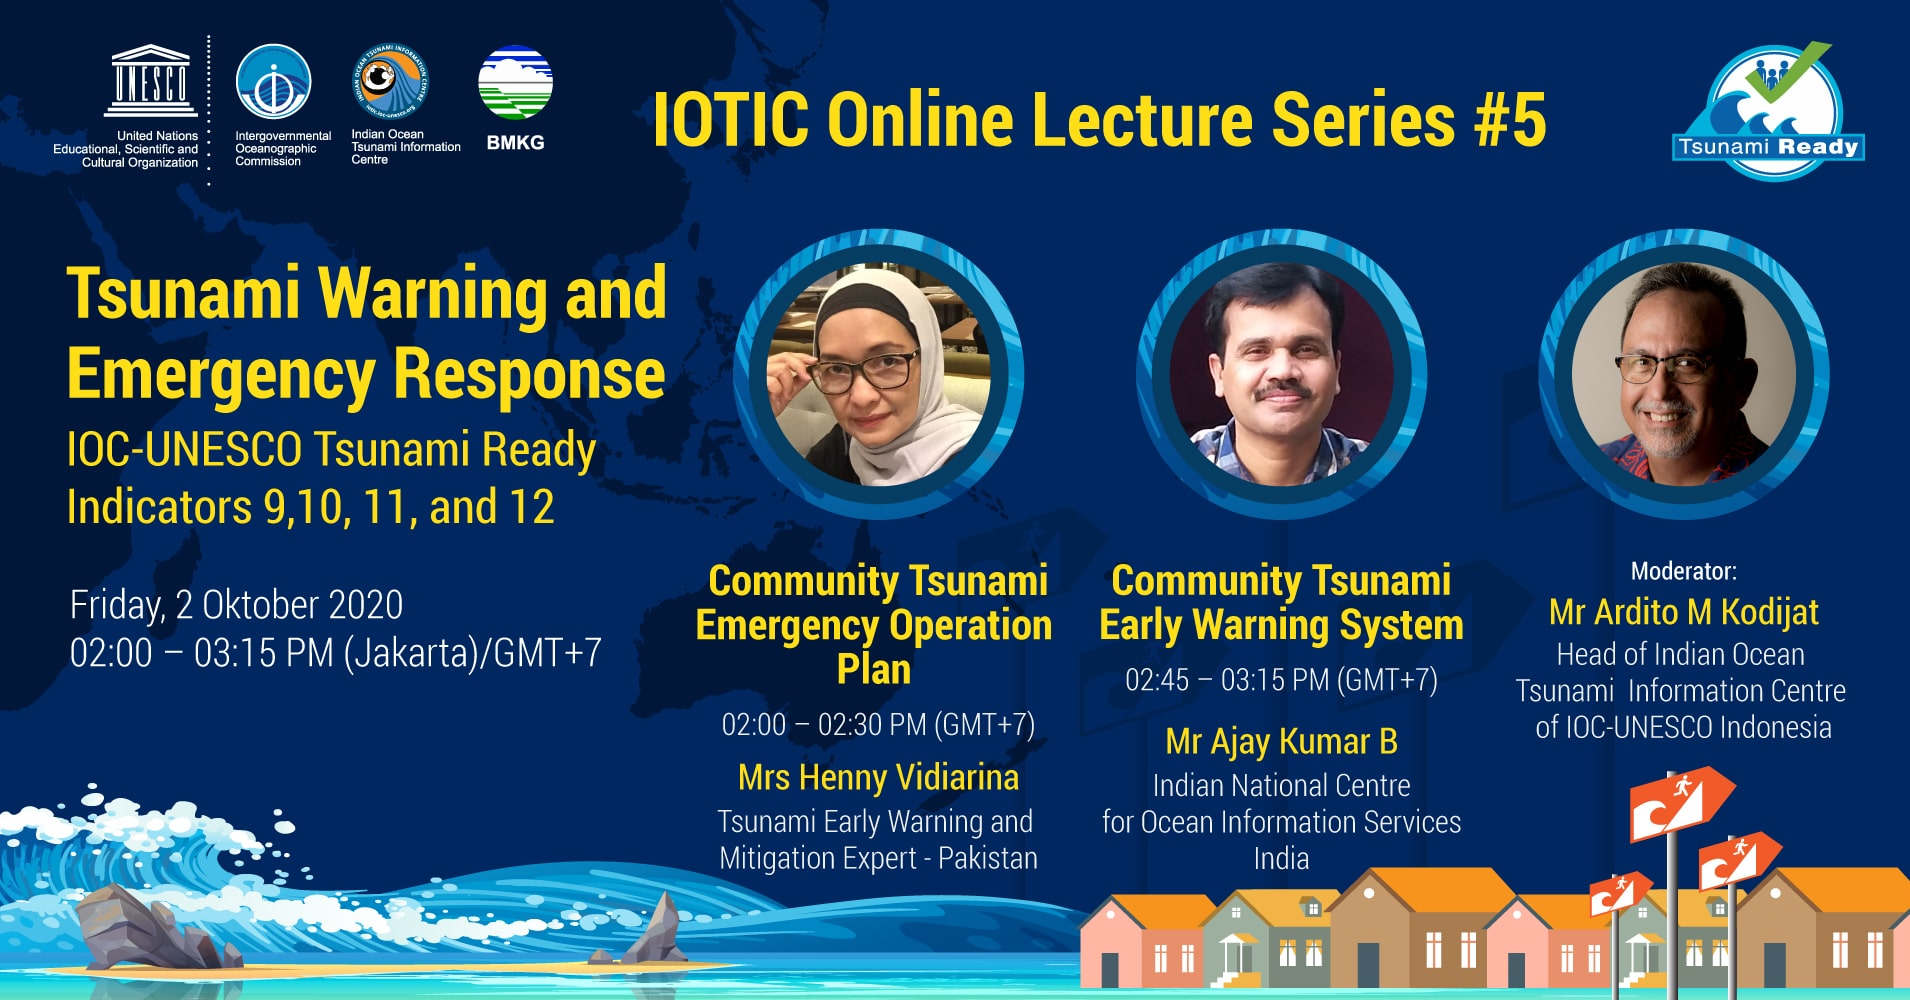 Online Lecture Series #5